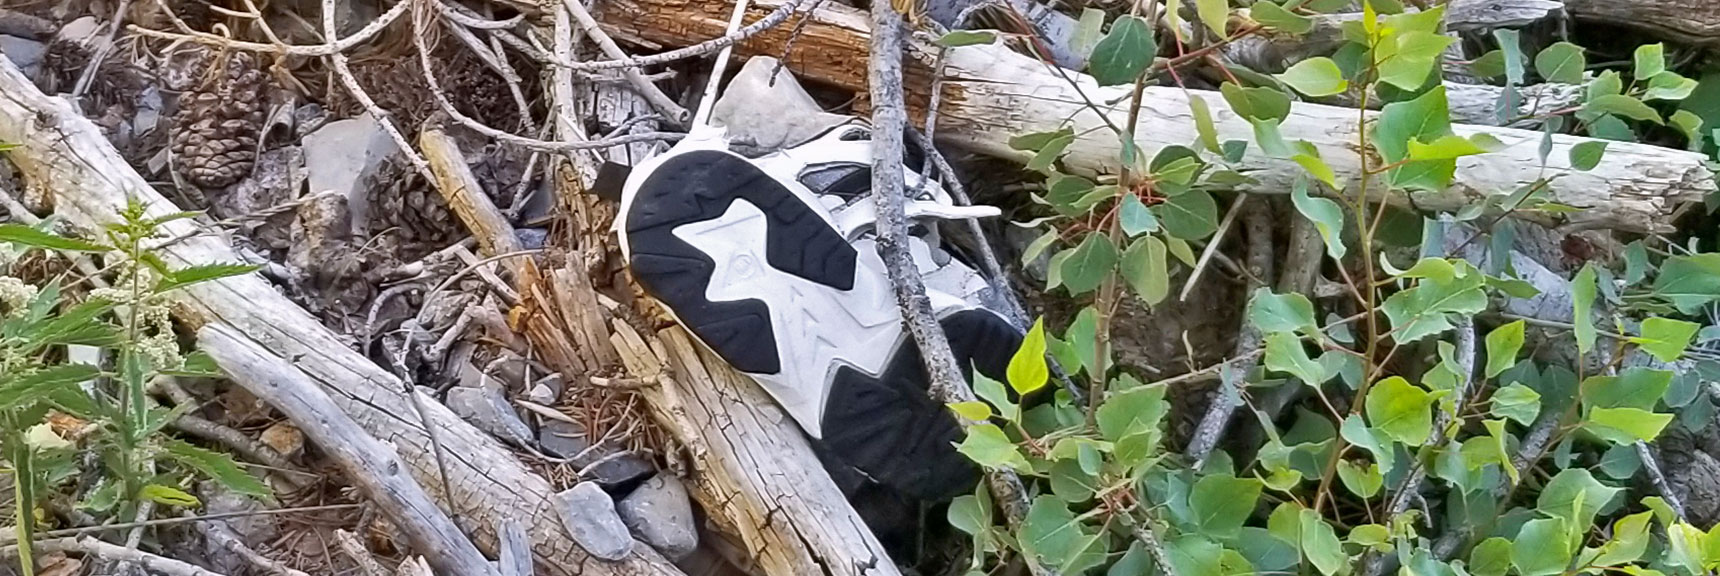 Lone Shoe Left Behind by a Hiker | Cathedral Rock to South Ridge Kyle Canyon Summit, Nevada